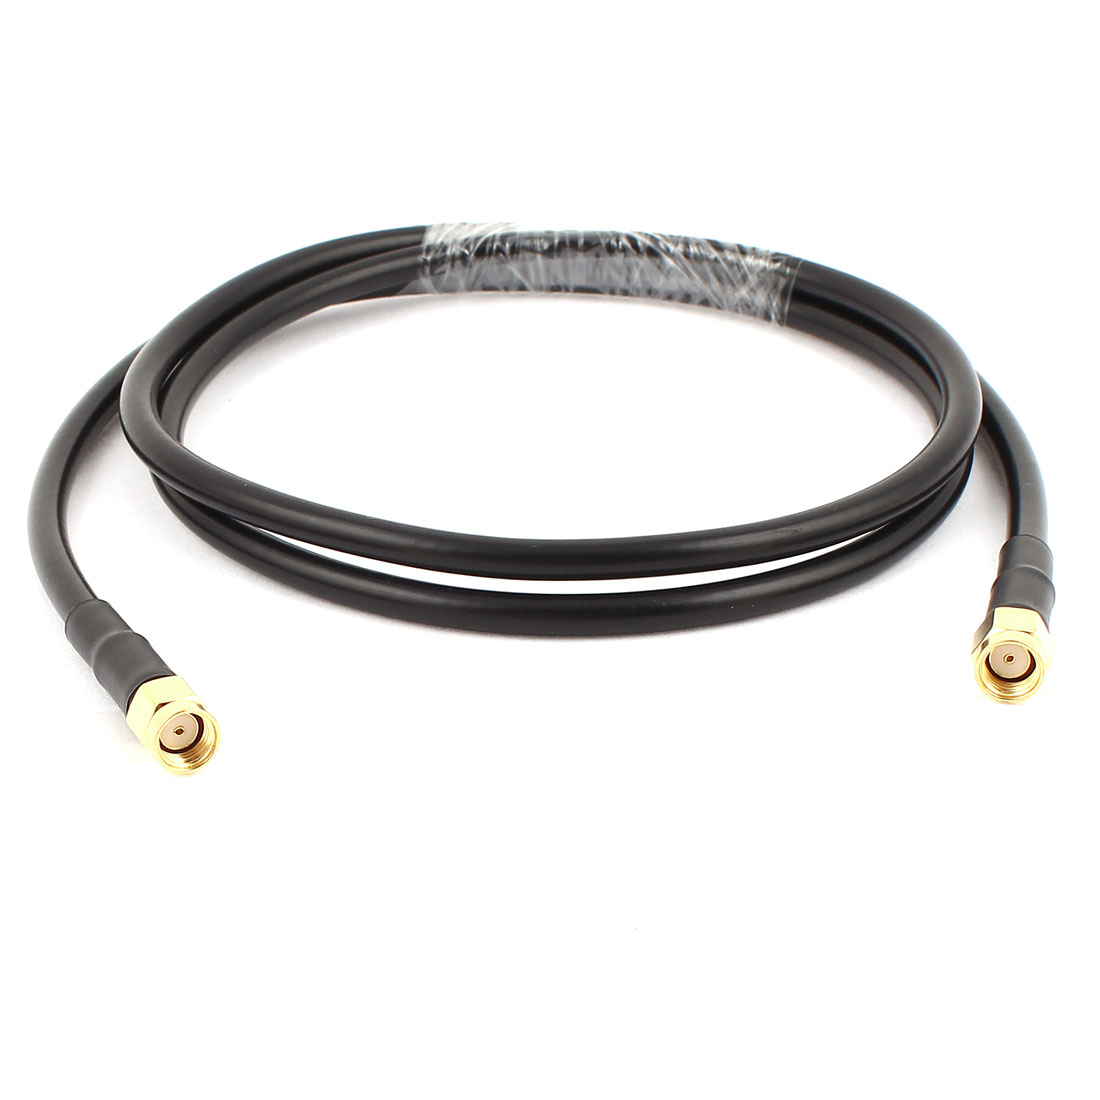 RP-SMA Male to Male Antenna Coaxial RG58 Cable Connector 1Meter Length